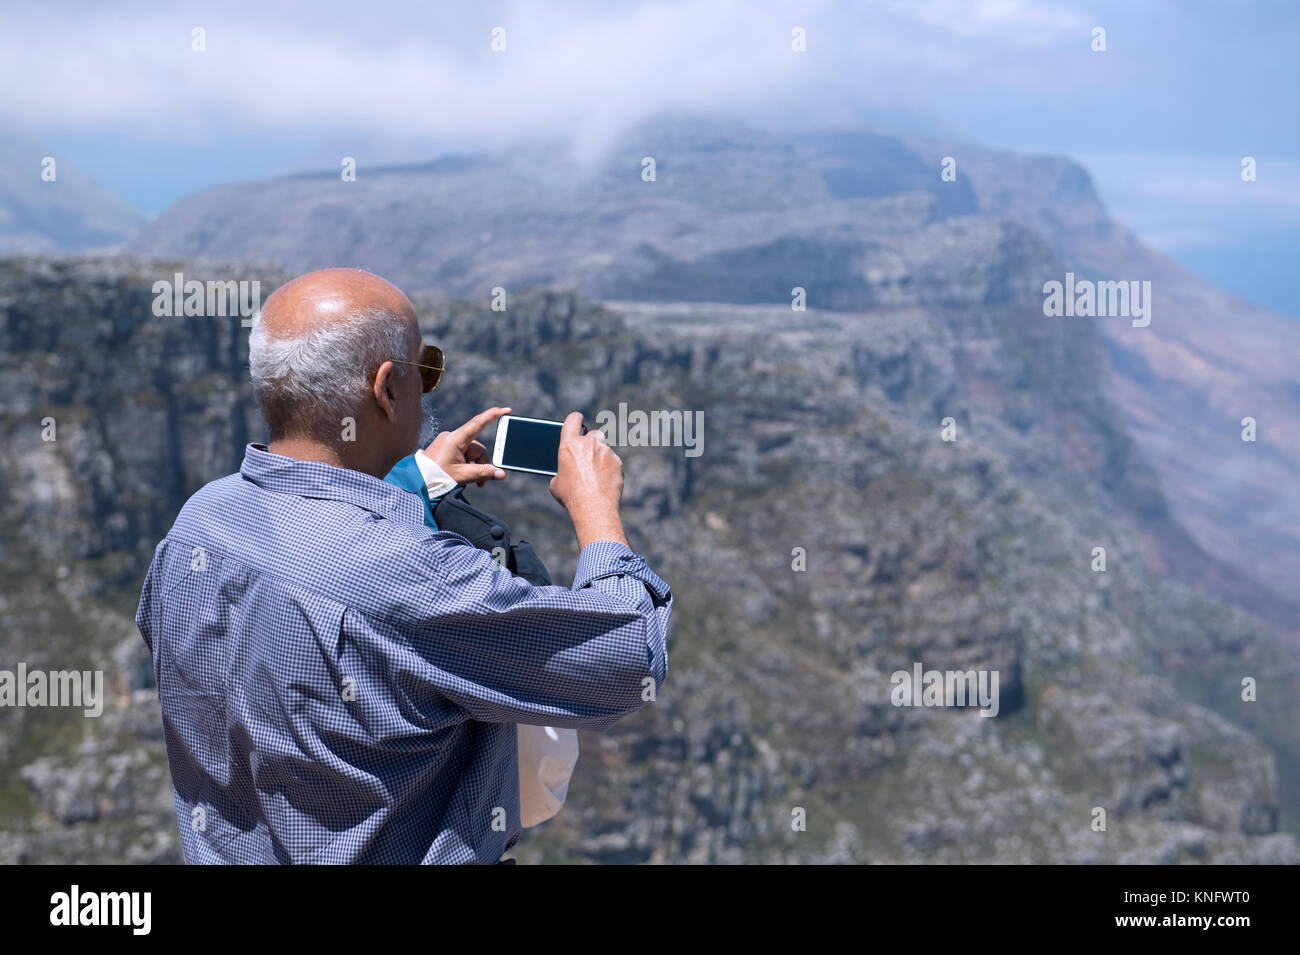 Tourist using a mobile phone to take a photograph of the view from the top of Table Mountain in Cape Town, South - Stock Image